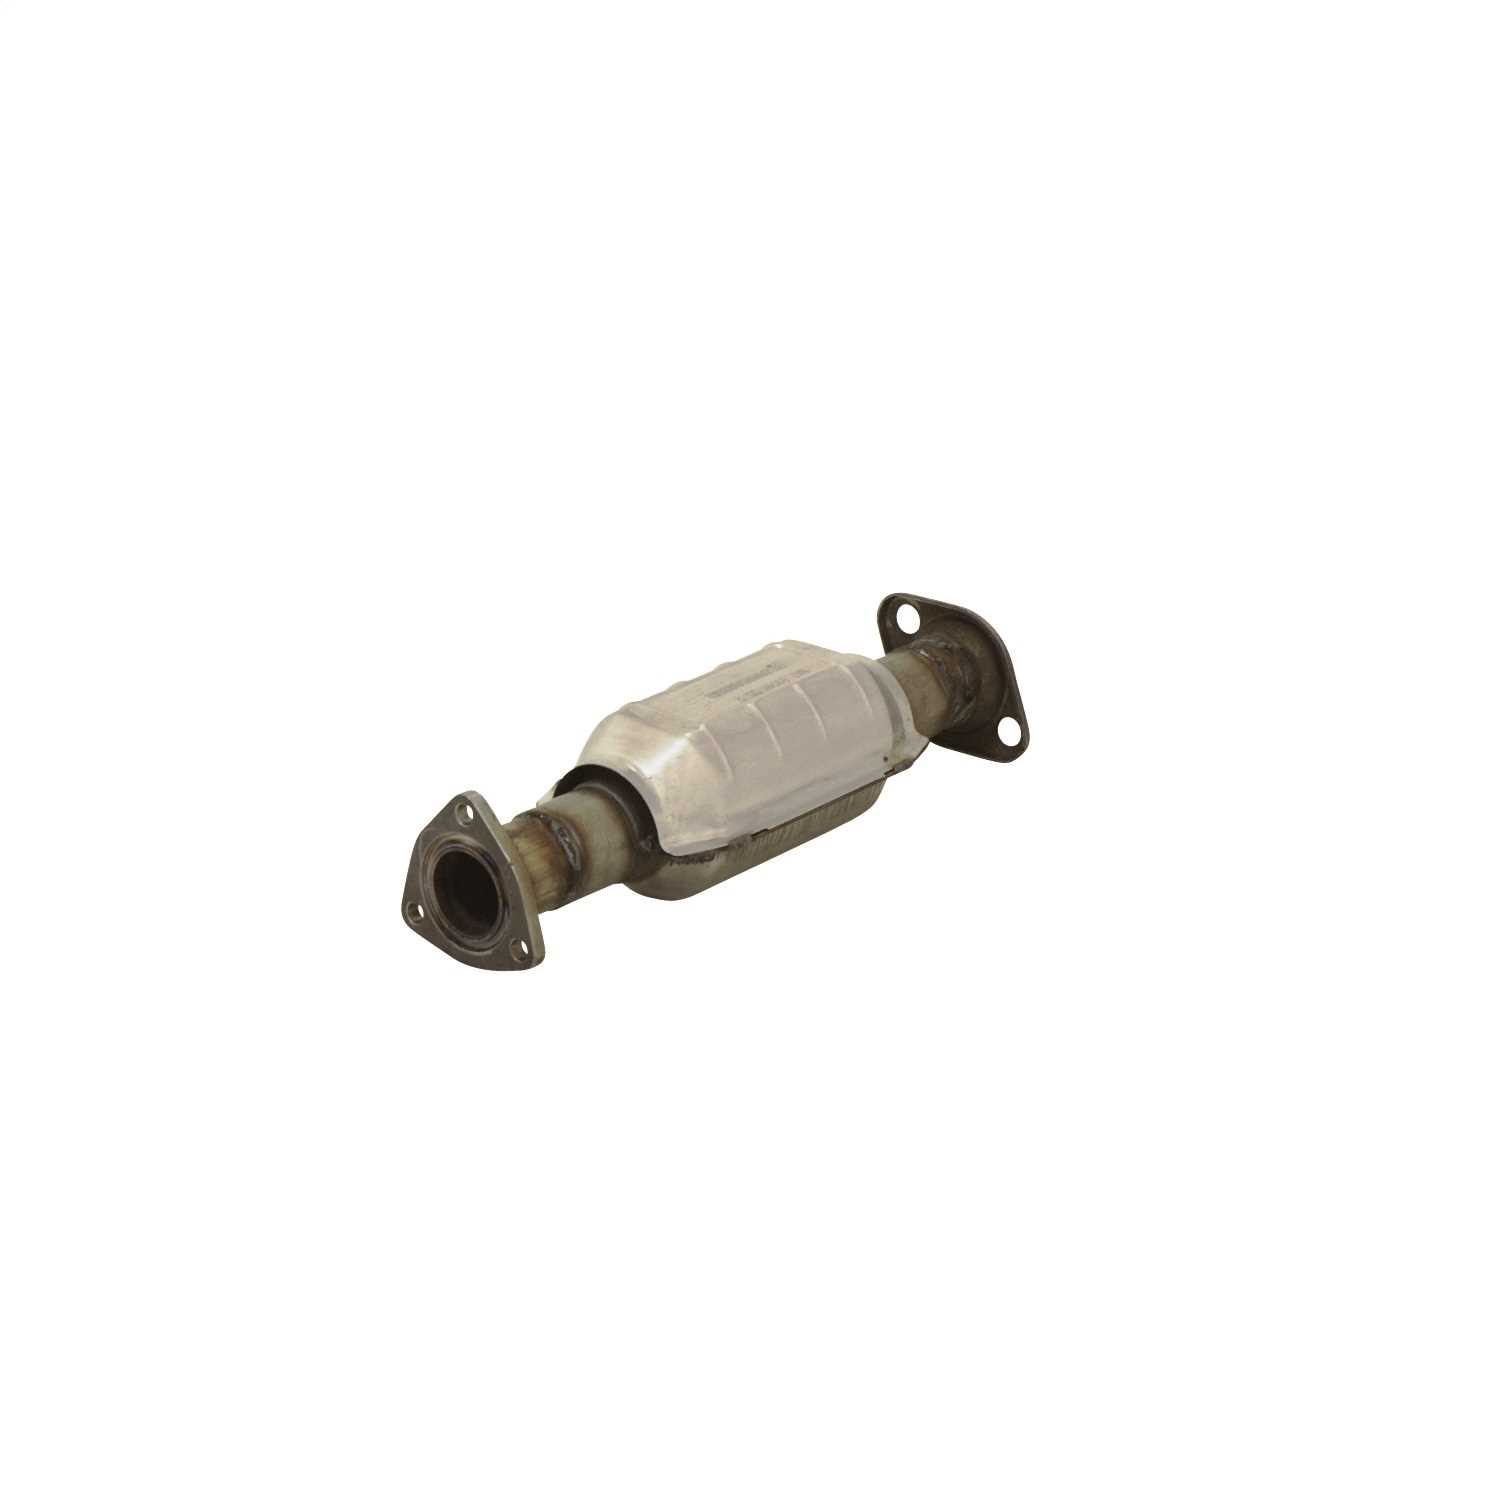 2060003 Flowmaster 49 State Catalytic Converters Direct Fit Catalytic Converter